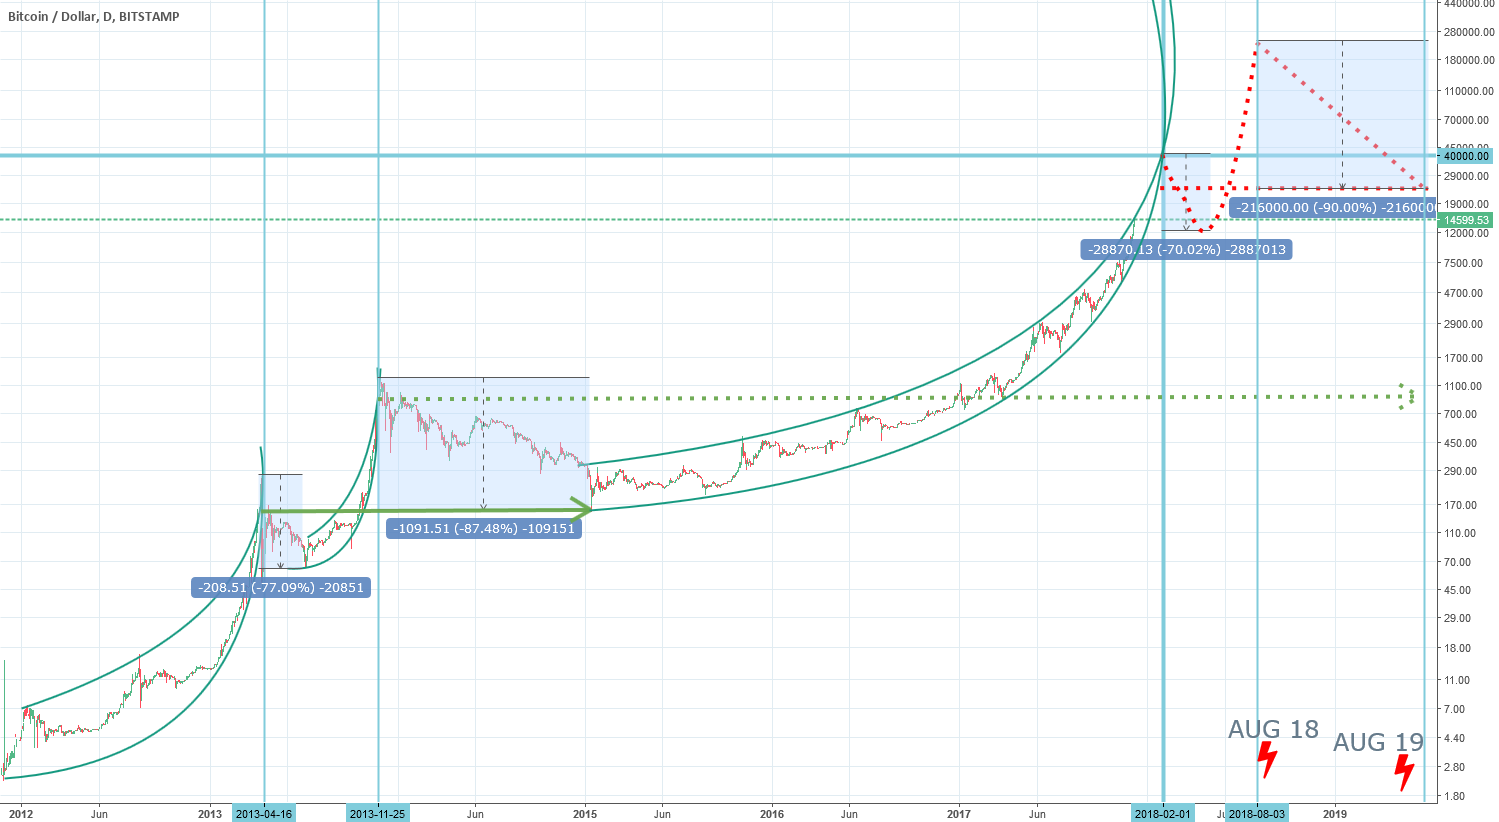 Parabolic pattern with possible repeat 2013 situation with -90%